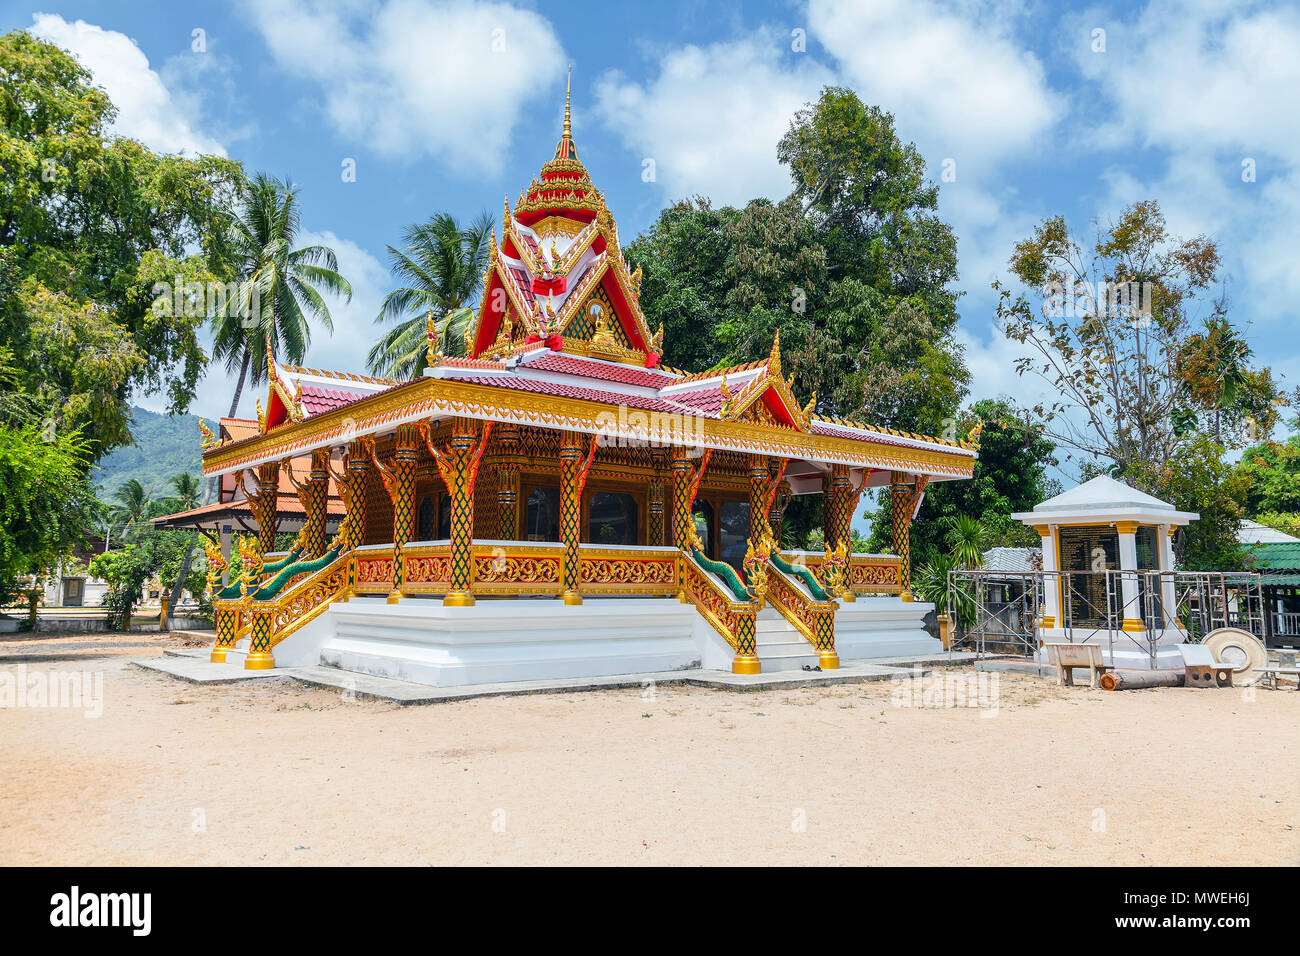 Buddhist temple on the island of Koh Samui in Thailand - Stock Image